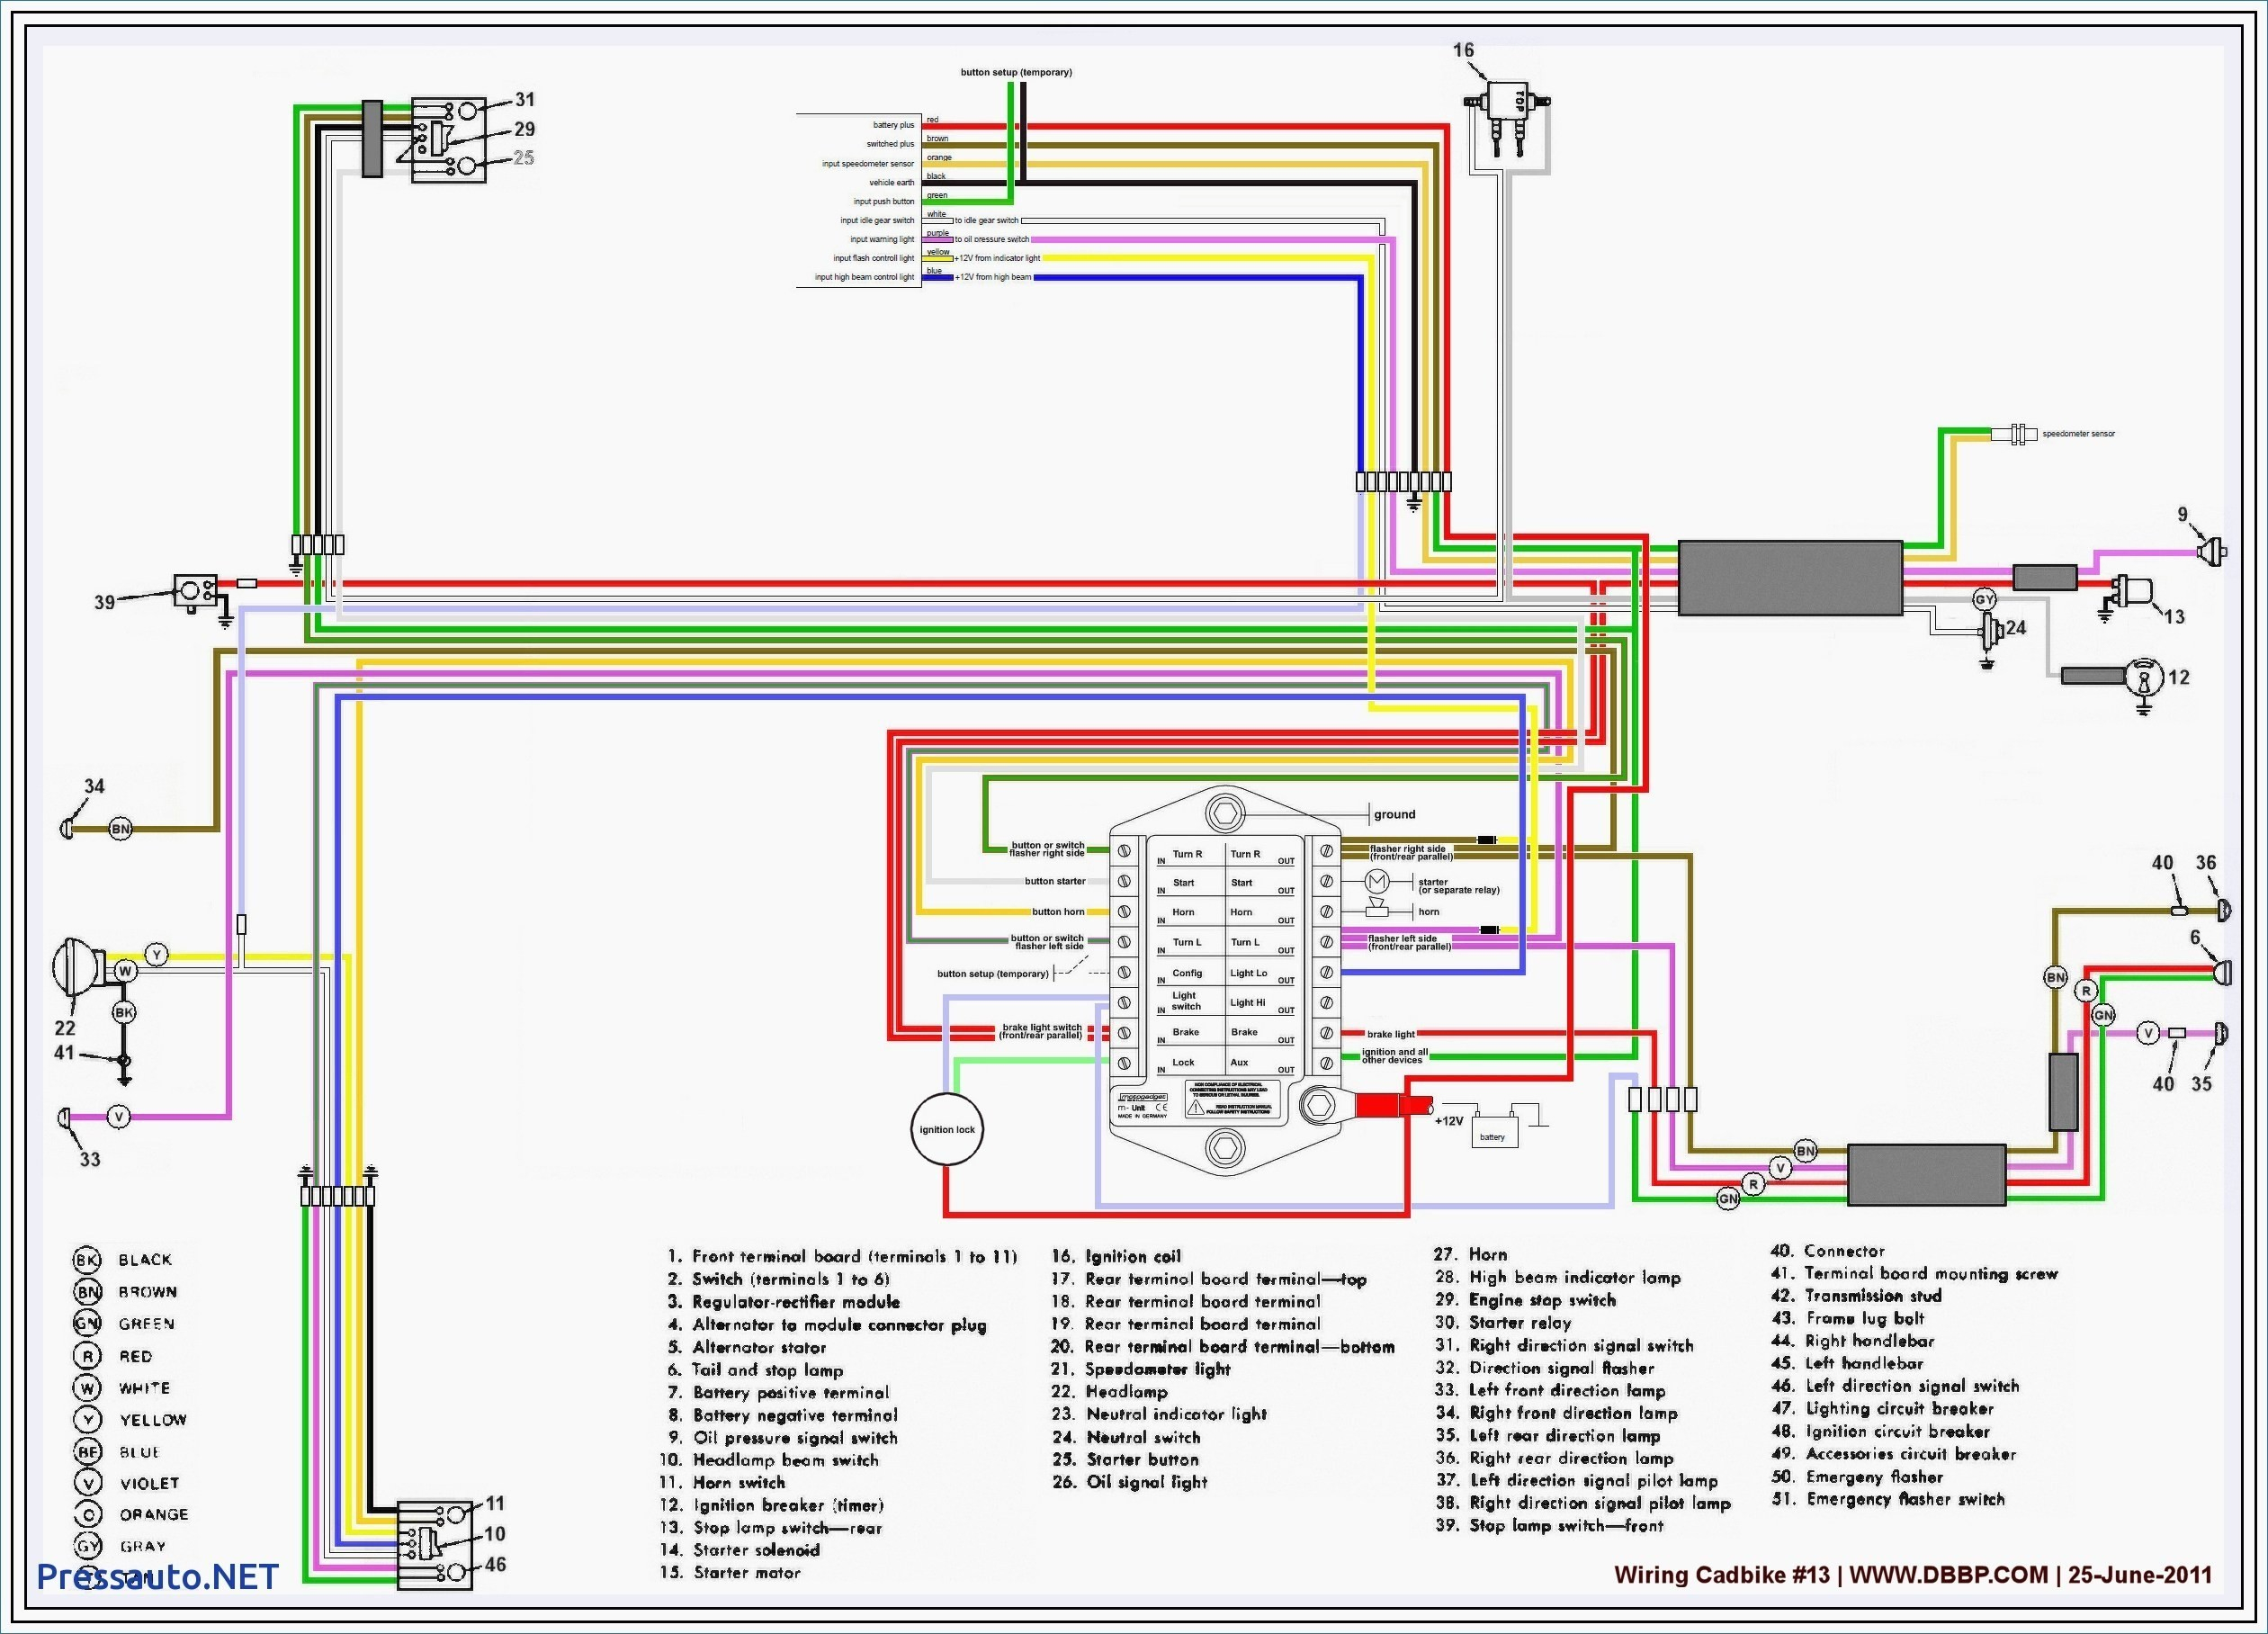 Wiring Diagram For Hudson Trailer Best Free Download Of | Techteazer - Hudson Trailer Wiring Diagram